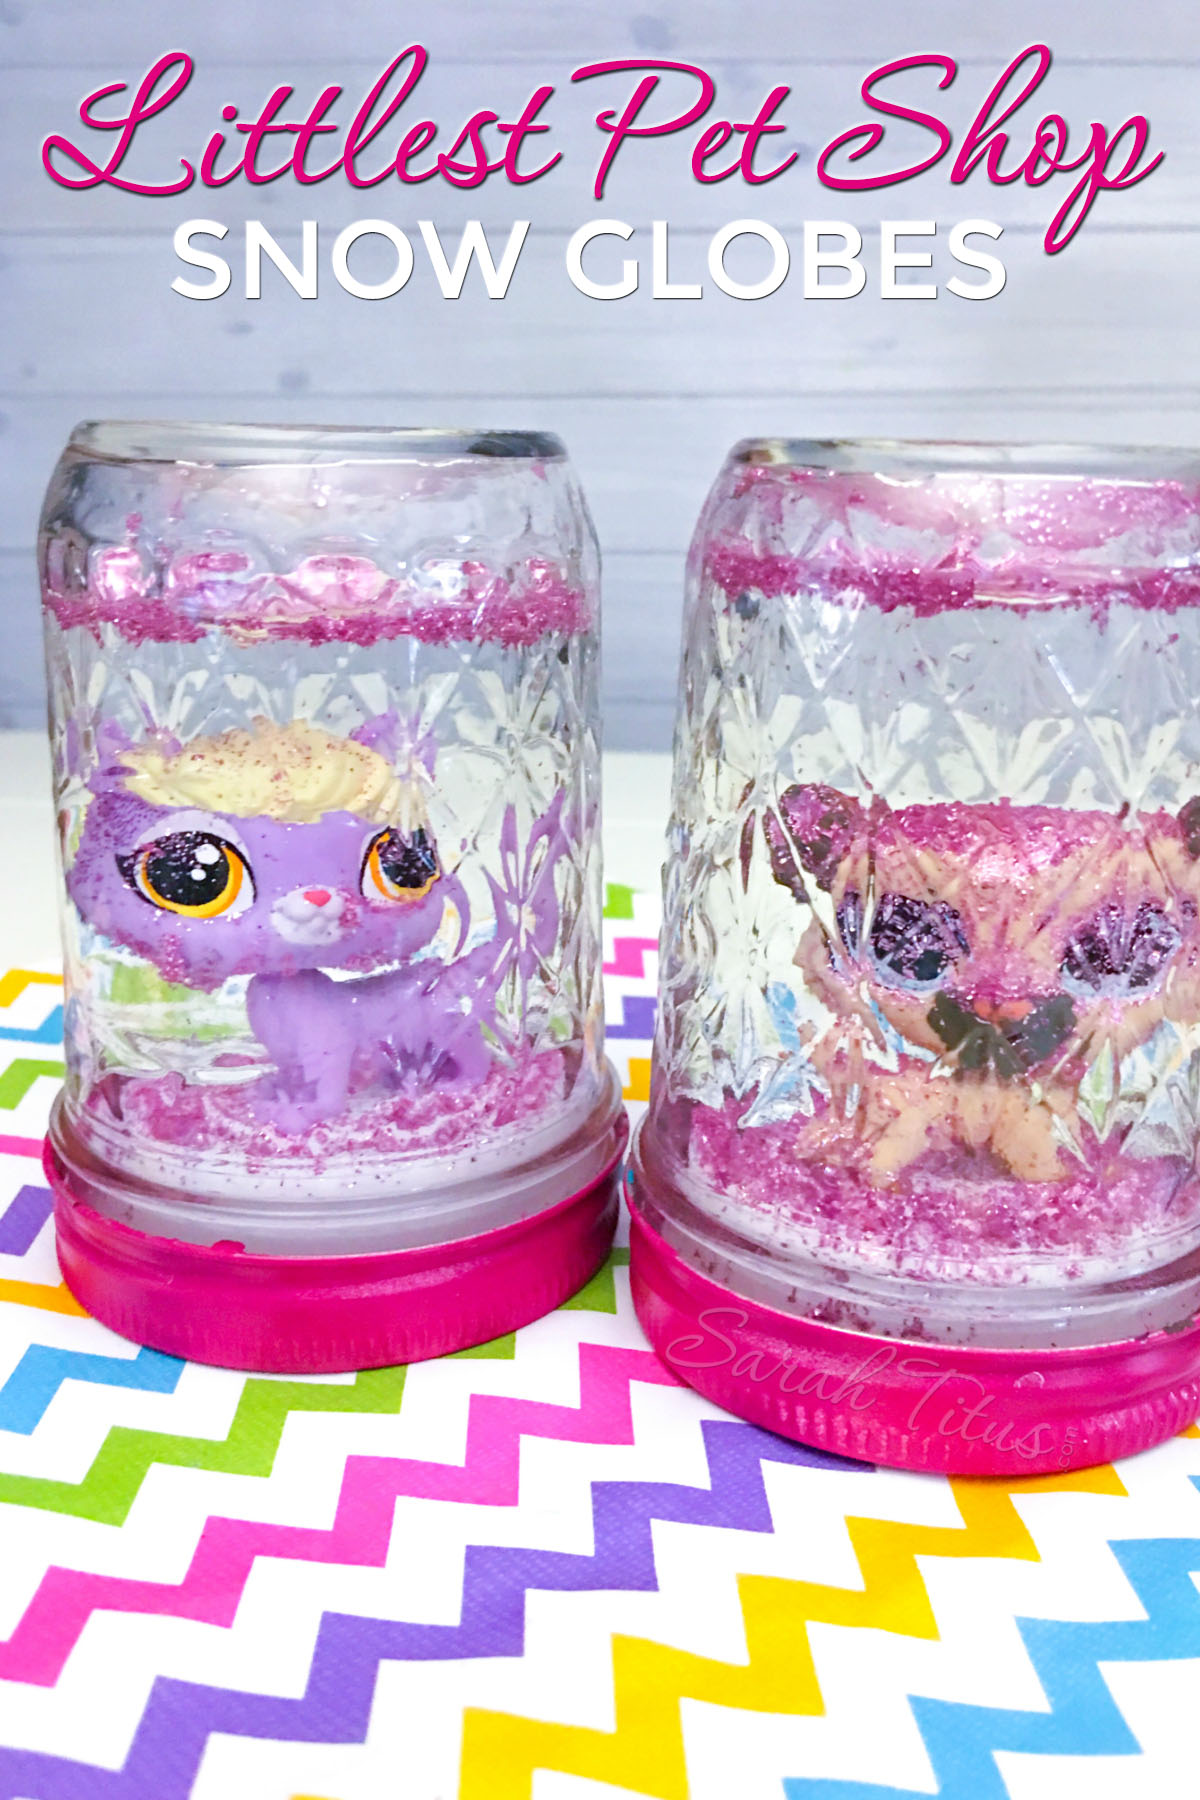 These Littlest Pet Shop snow globes are the perfect DIY craft to make for a play date, a birthday party, or the holiday season. LPS rocks!